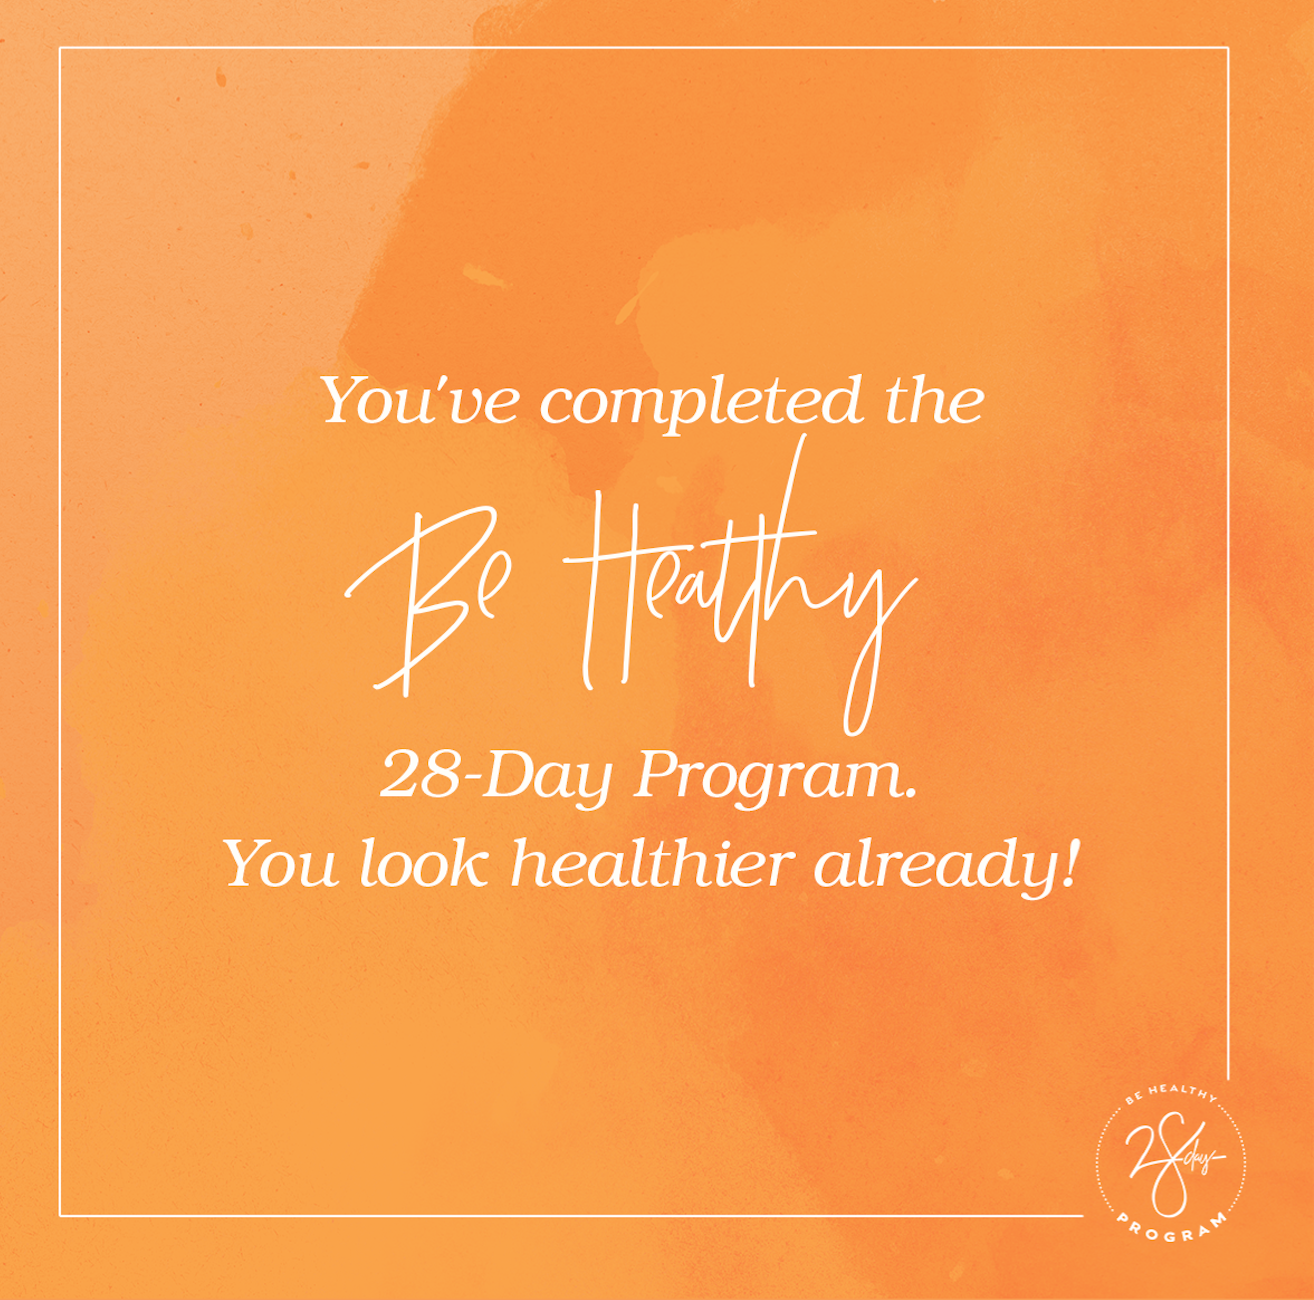 Day 28 - Thank you for participating in this 28-Day Program. Hopefully you've seen a positive change over the last four weeks. Take this opportunity to share the new, healthy habits you've created and continue working to improve yourself a little each day.